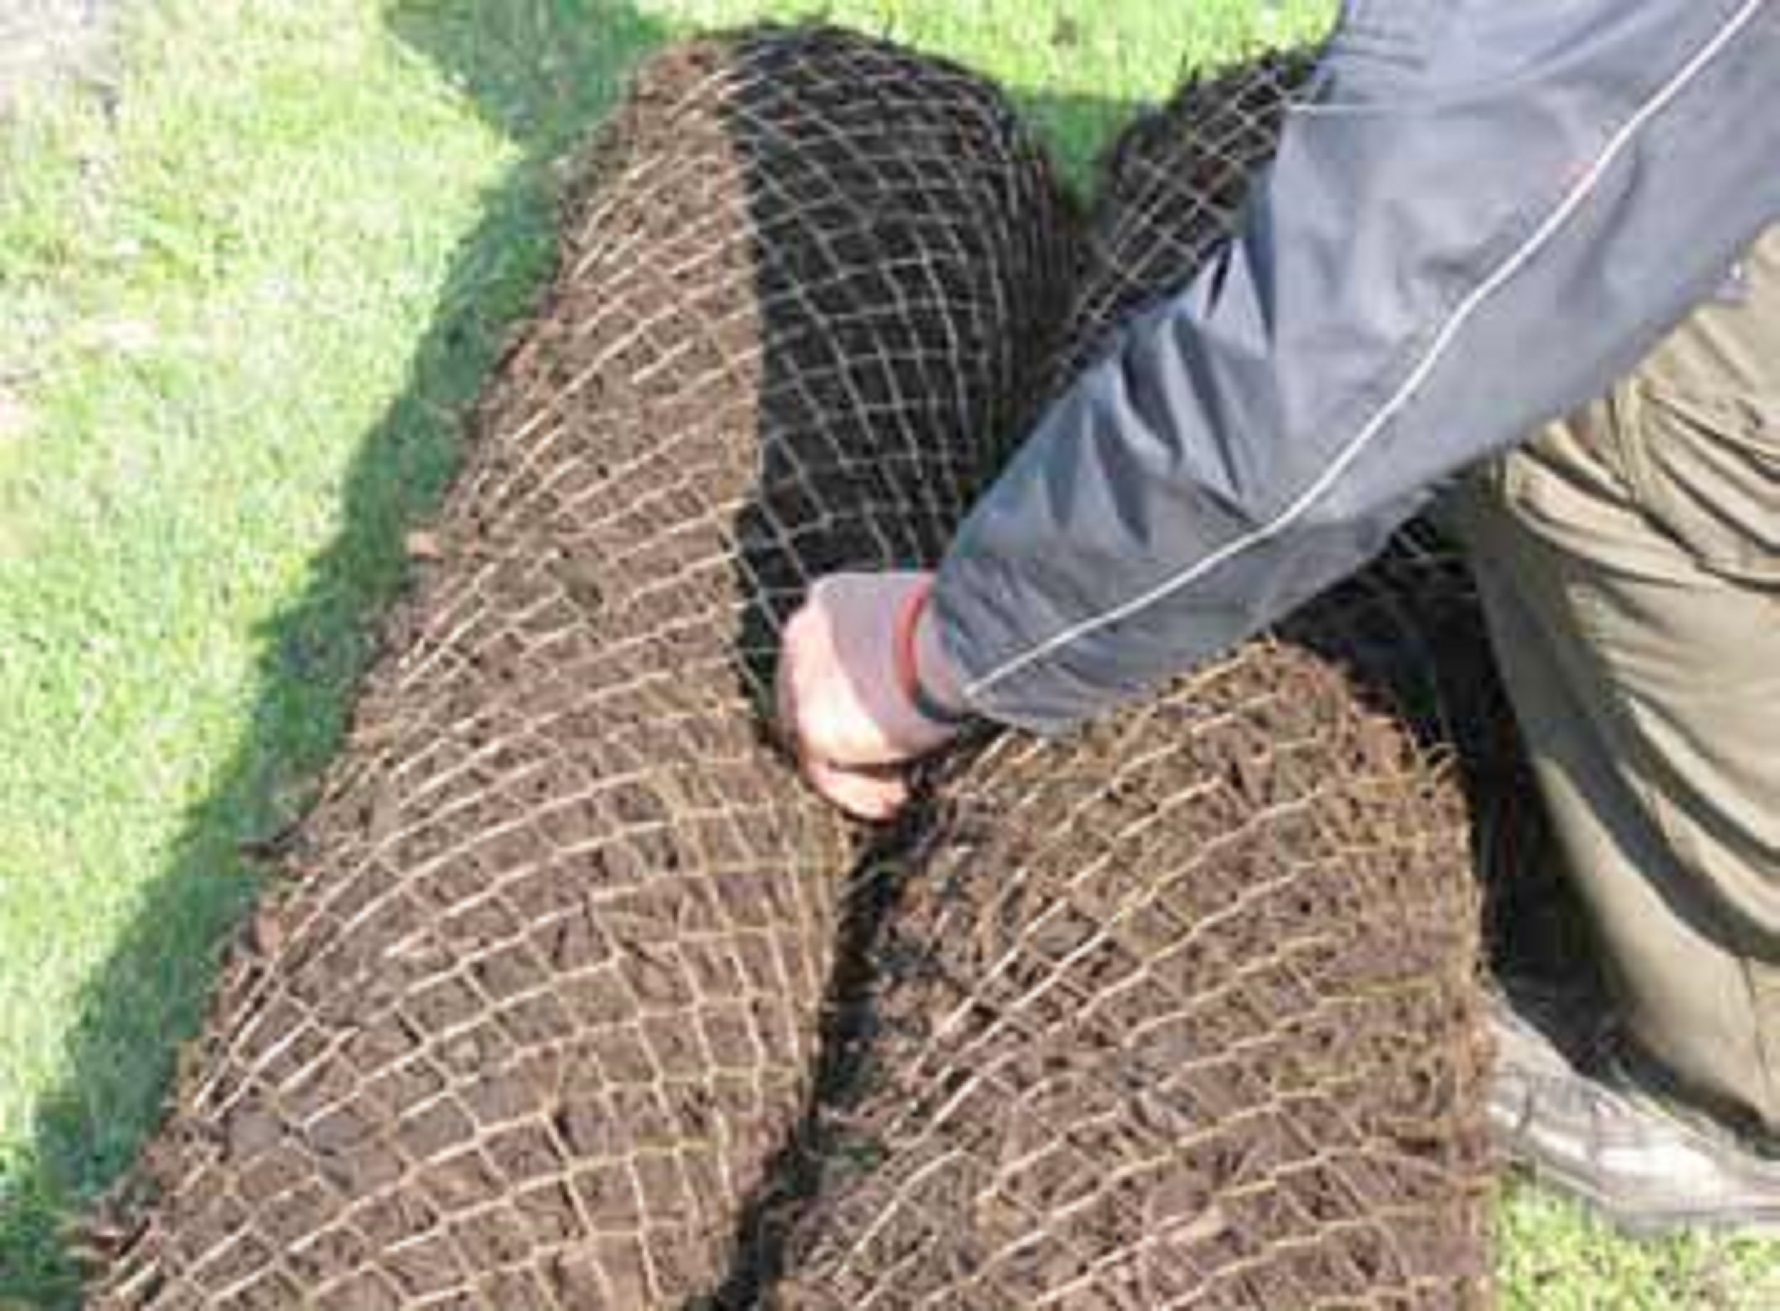 Aqualog biochar fibre rolls are available in 2 by 0.2m units